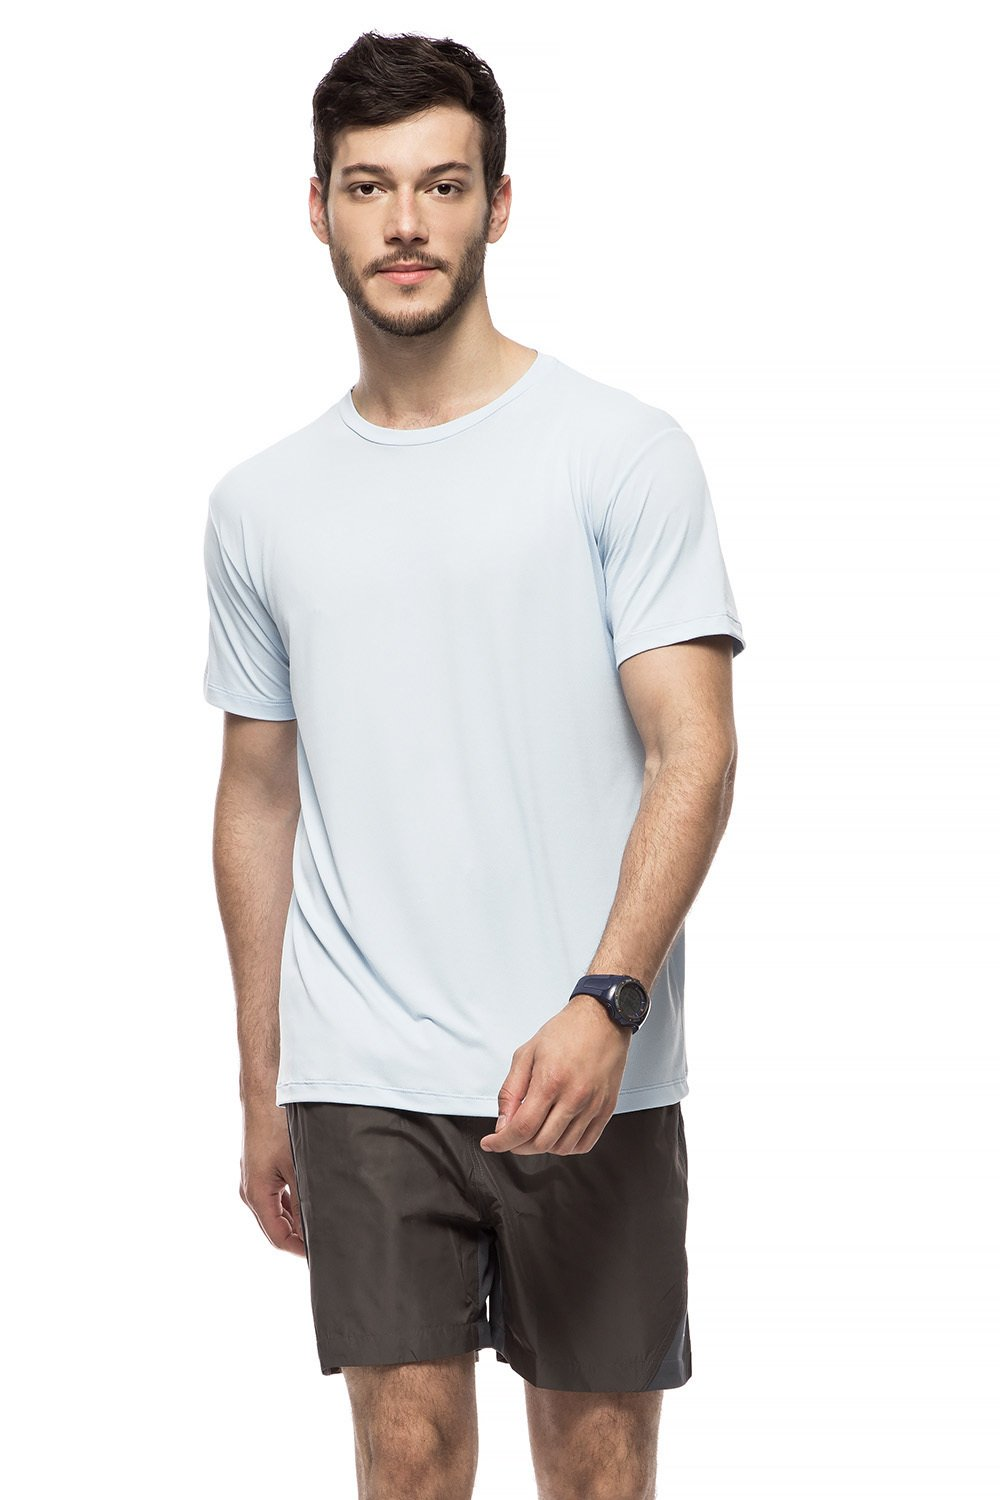 All-Day Comfort T-Shirt 1